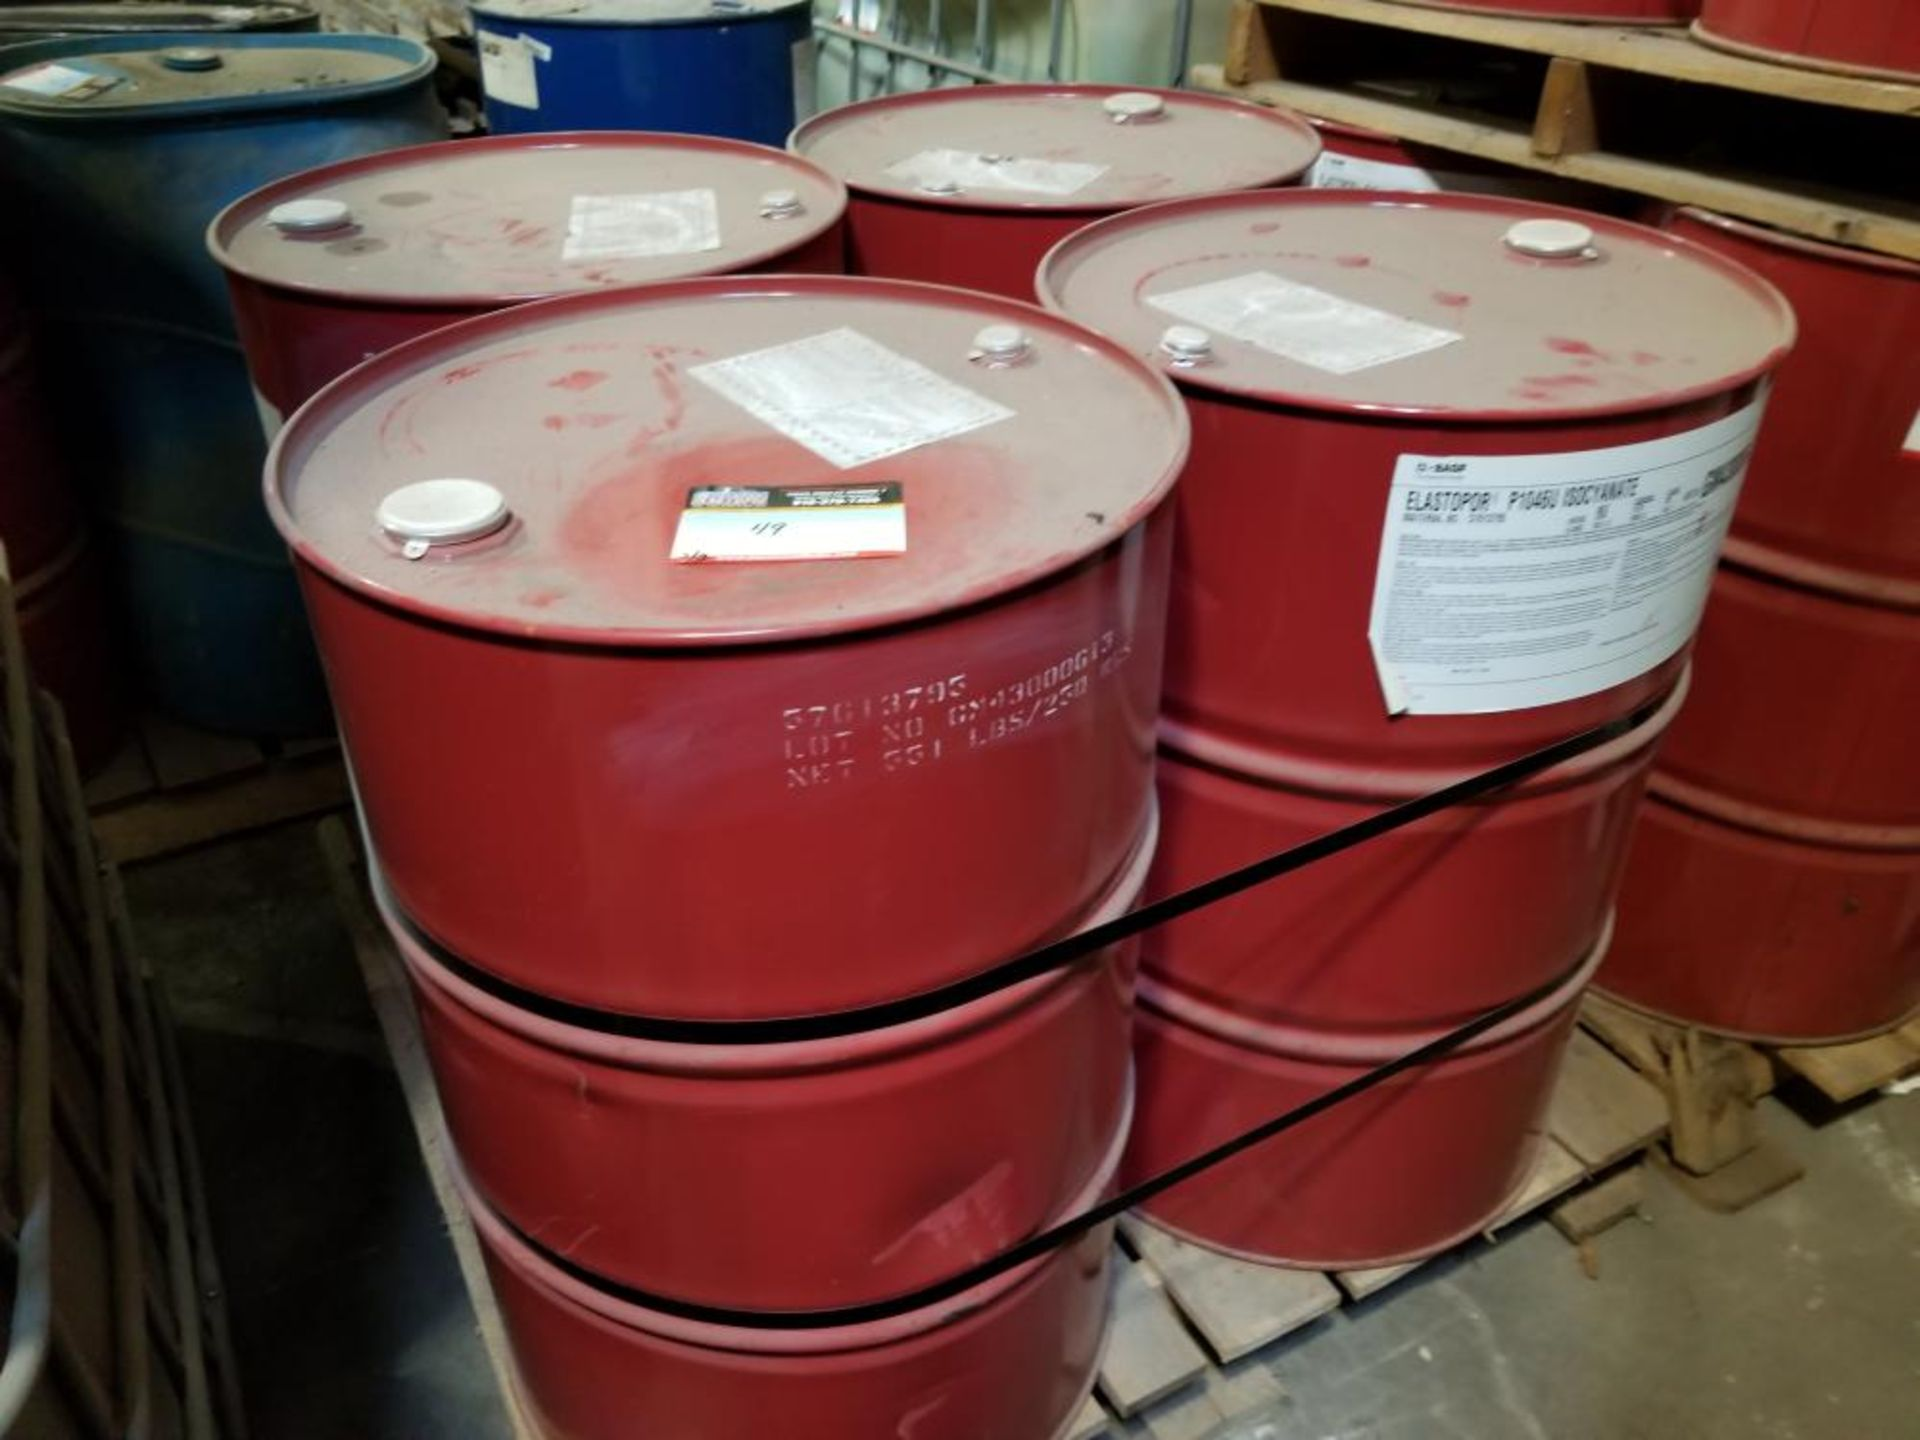 Ribs and 5 barrels of isocyanate / Tôtes et 5 barils d'isocyanate - Image 2 of 3